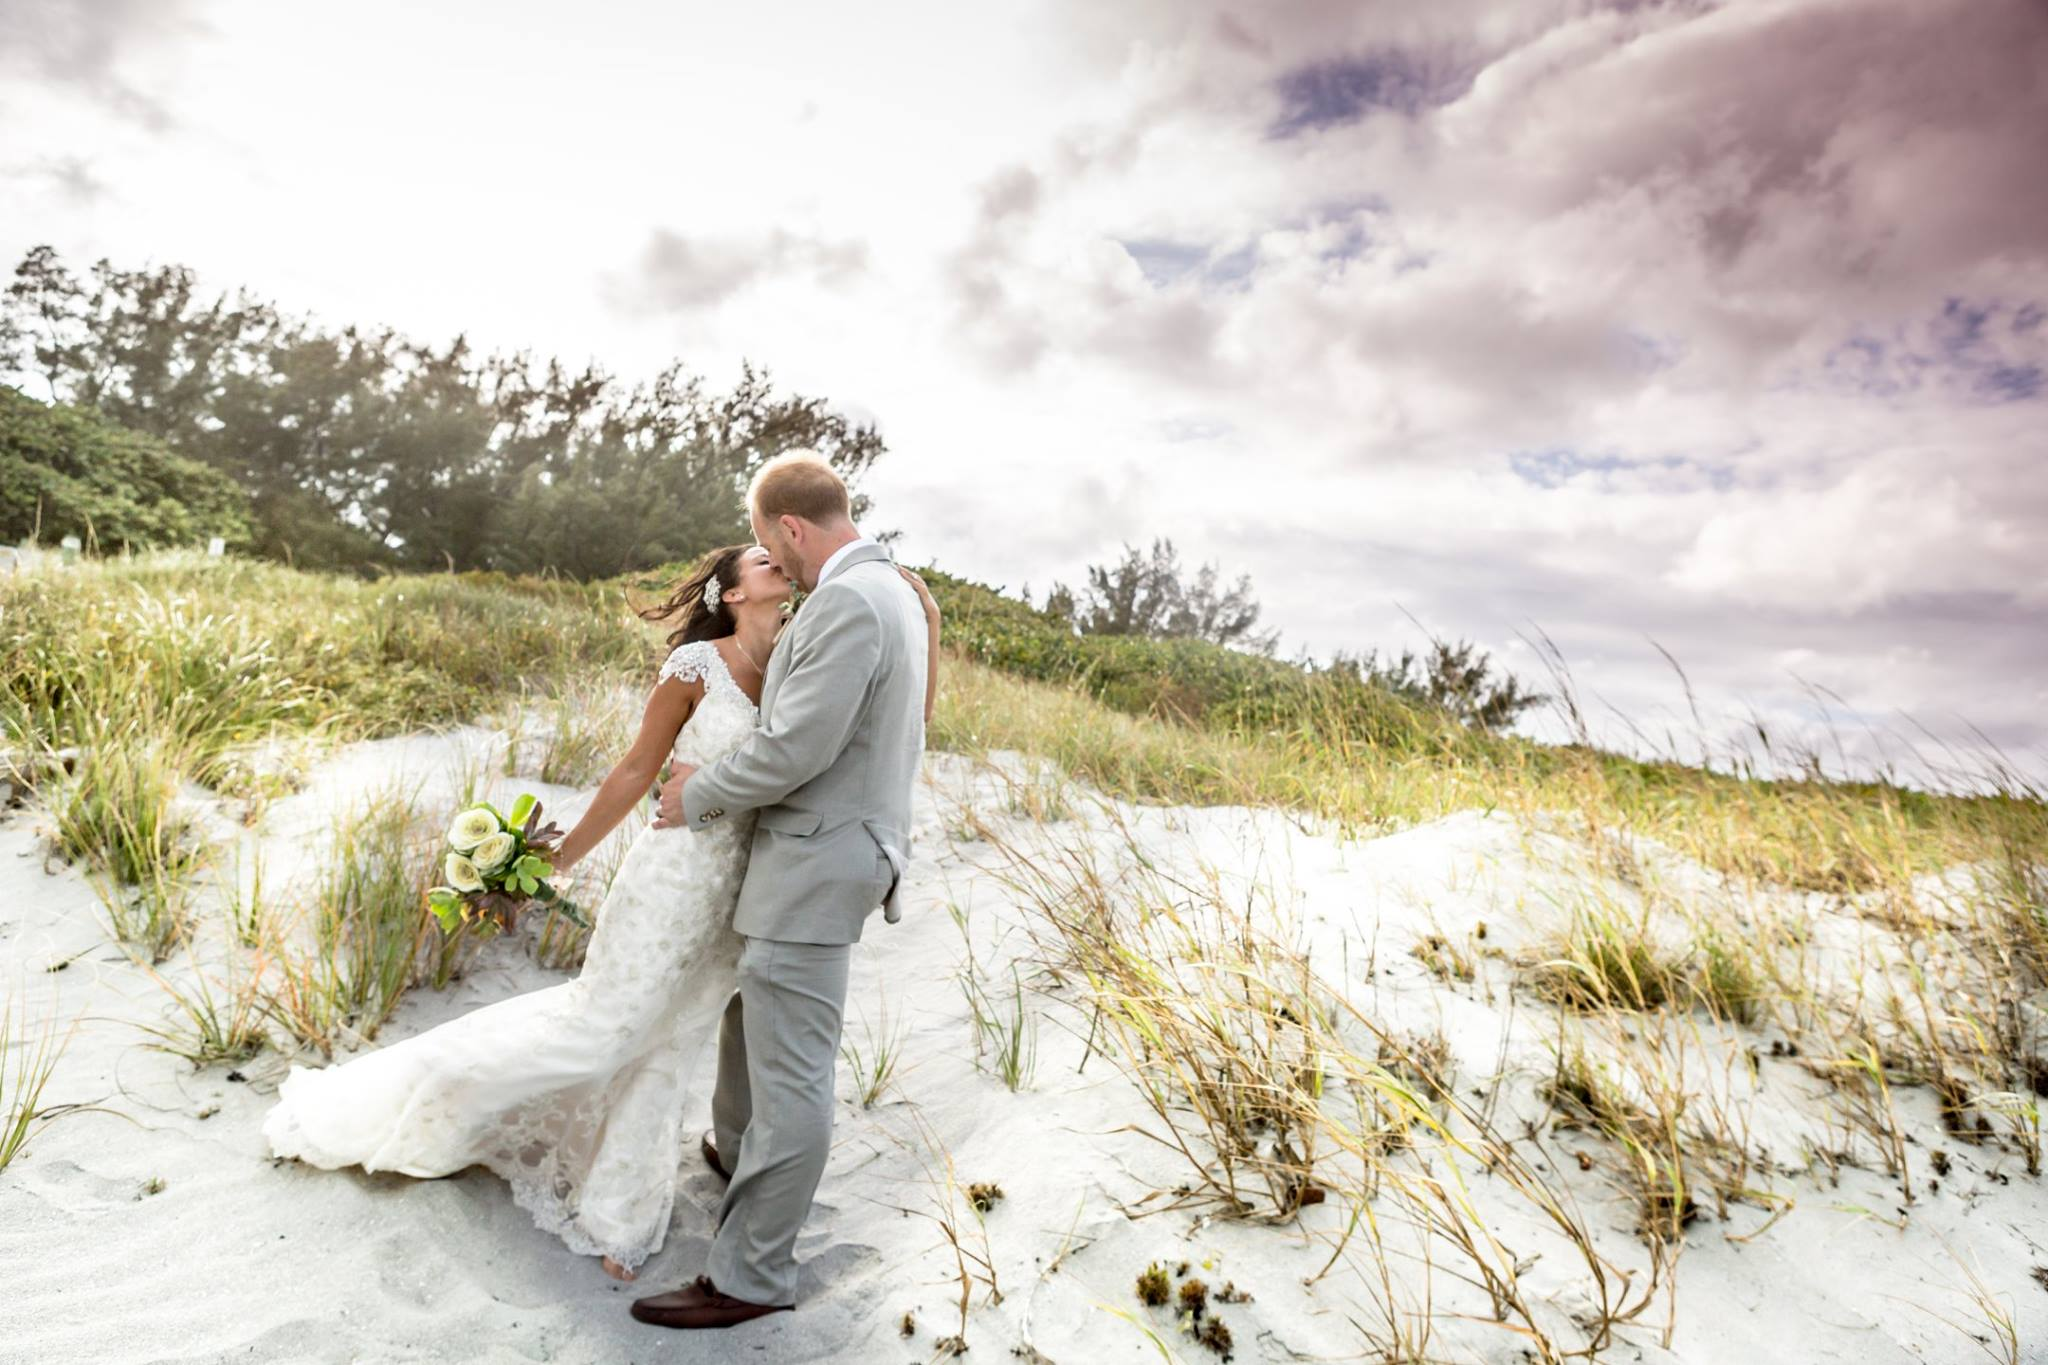 Couture Bridal Photographer when you need a Palm Beach Wedding Photographer